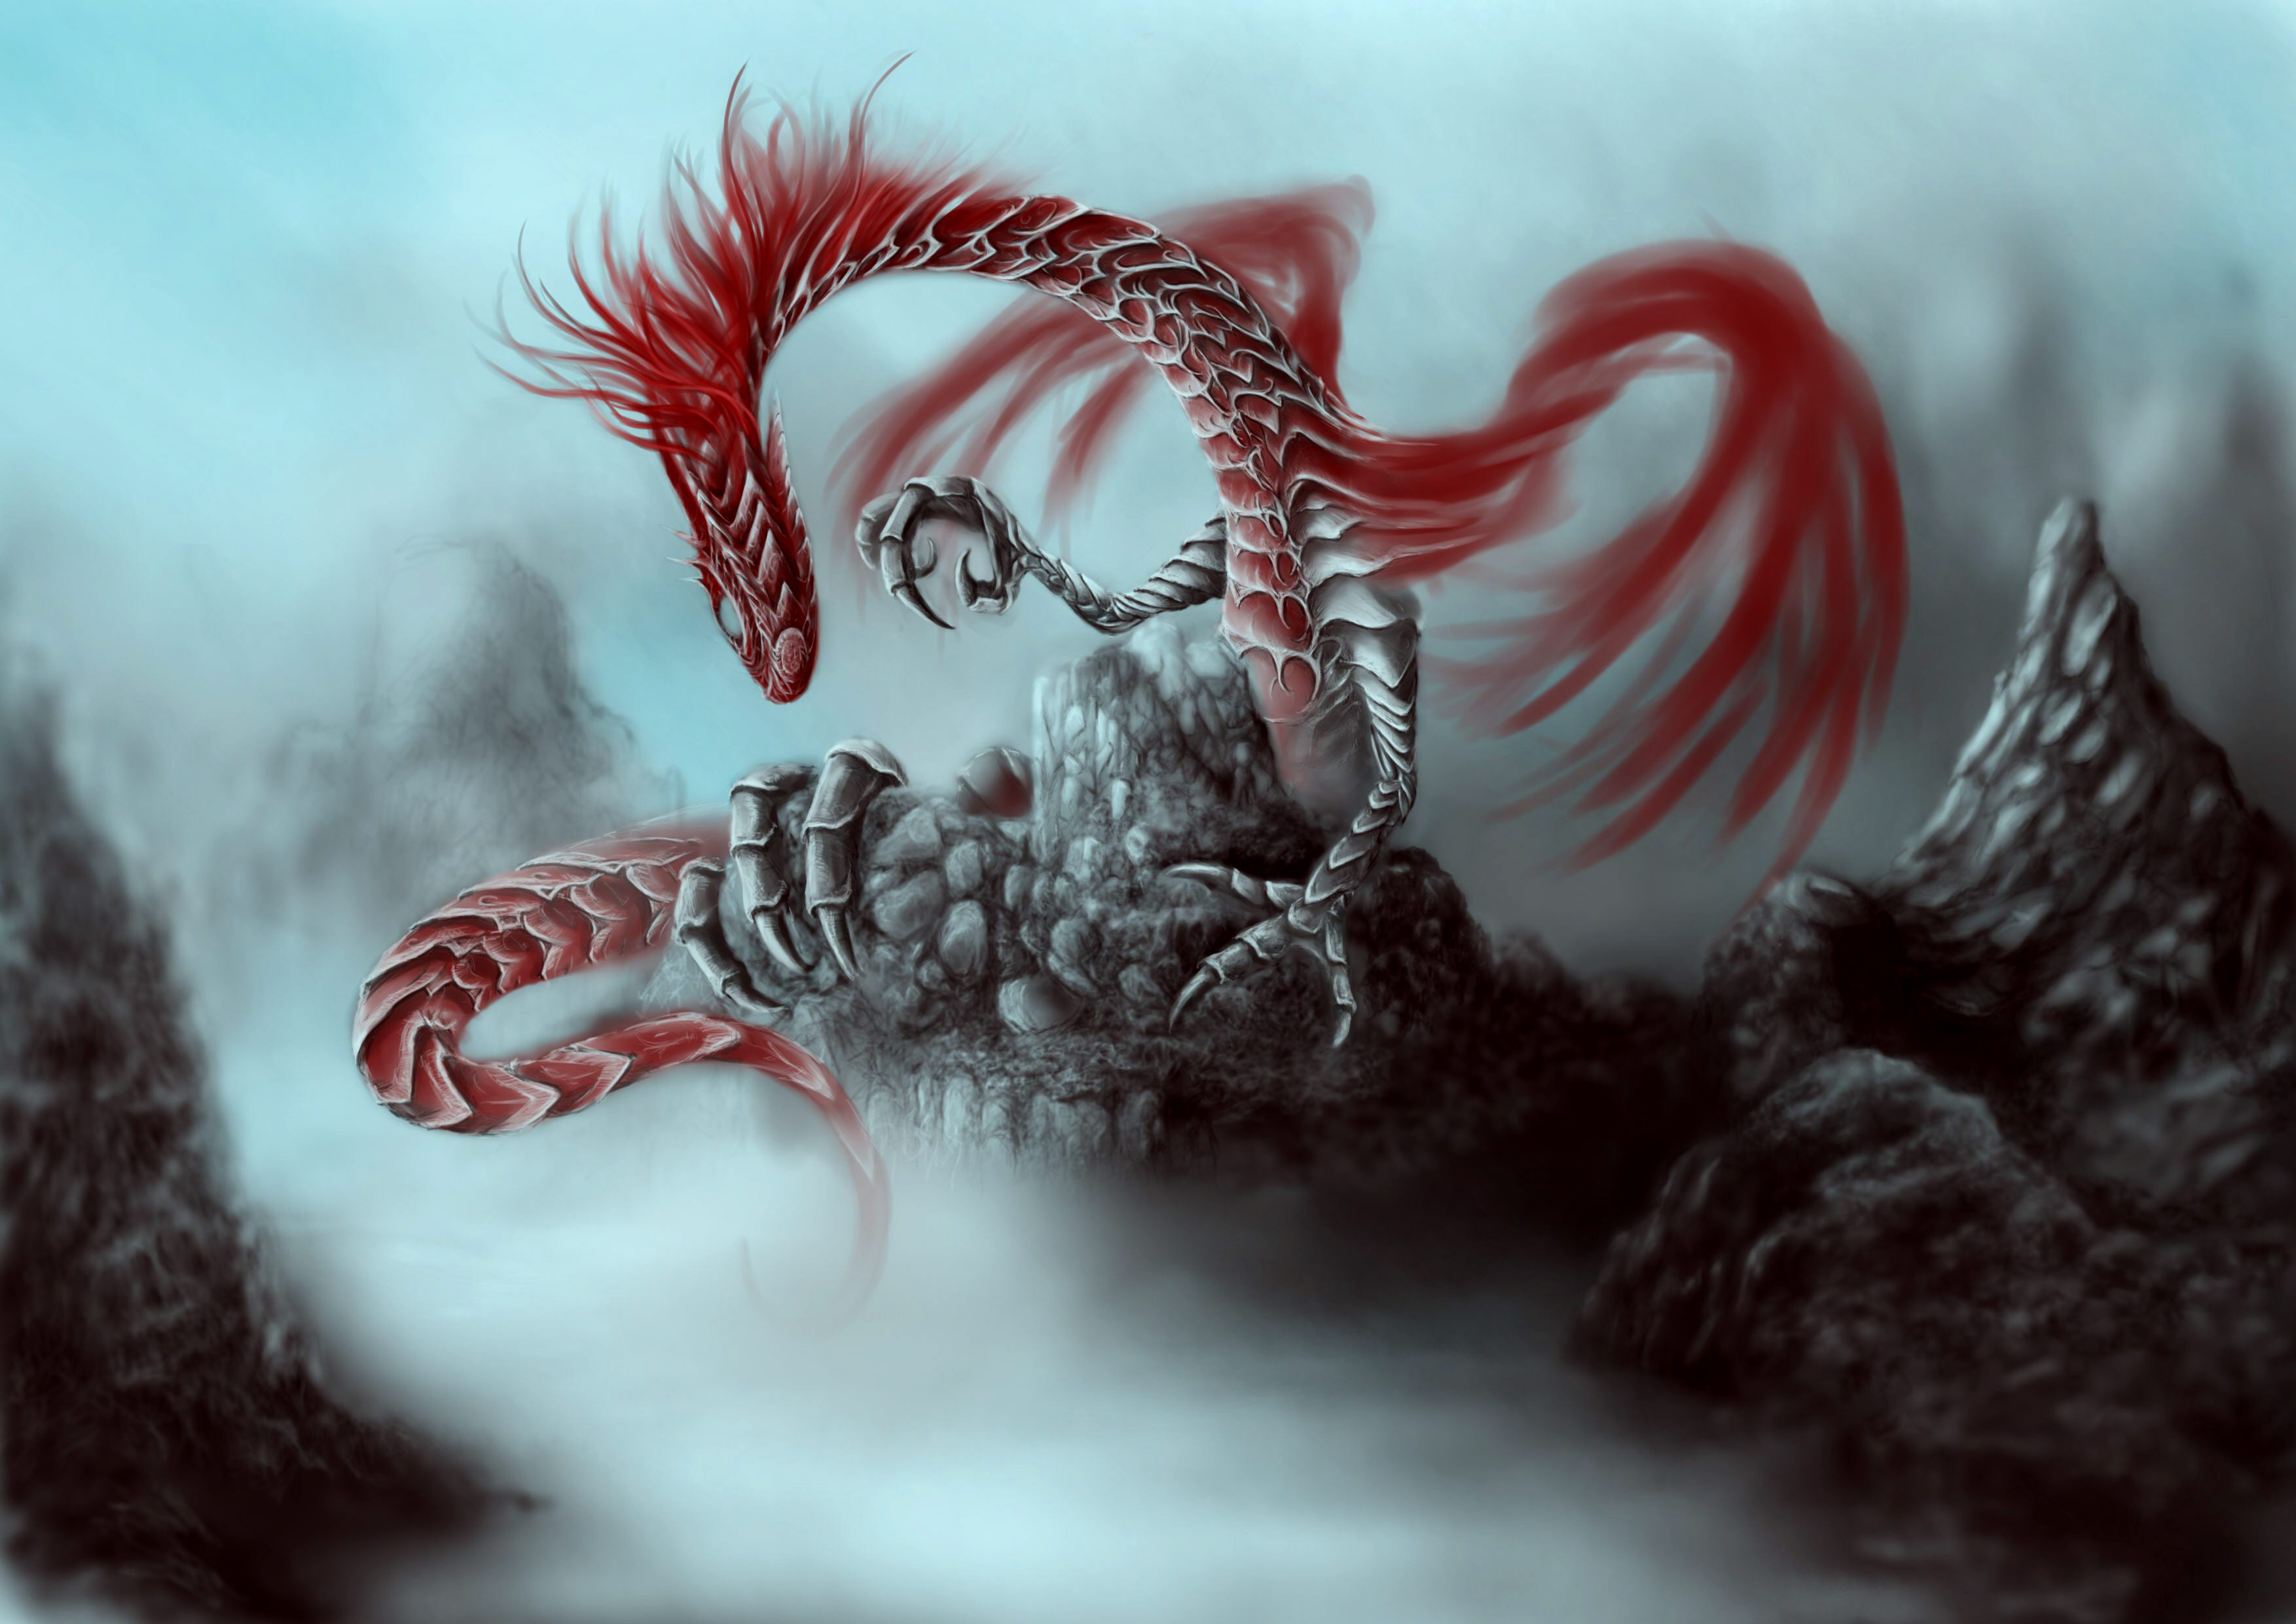 Dragon HD Wallpaper | Background Image | 3507x2480 | ID:248485 - Wallpaper Abyss